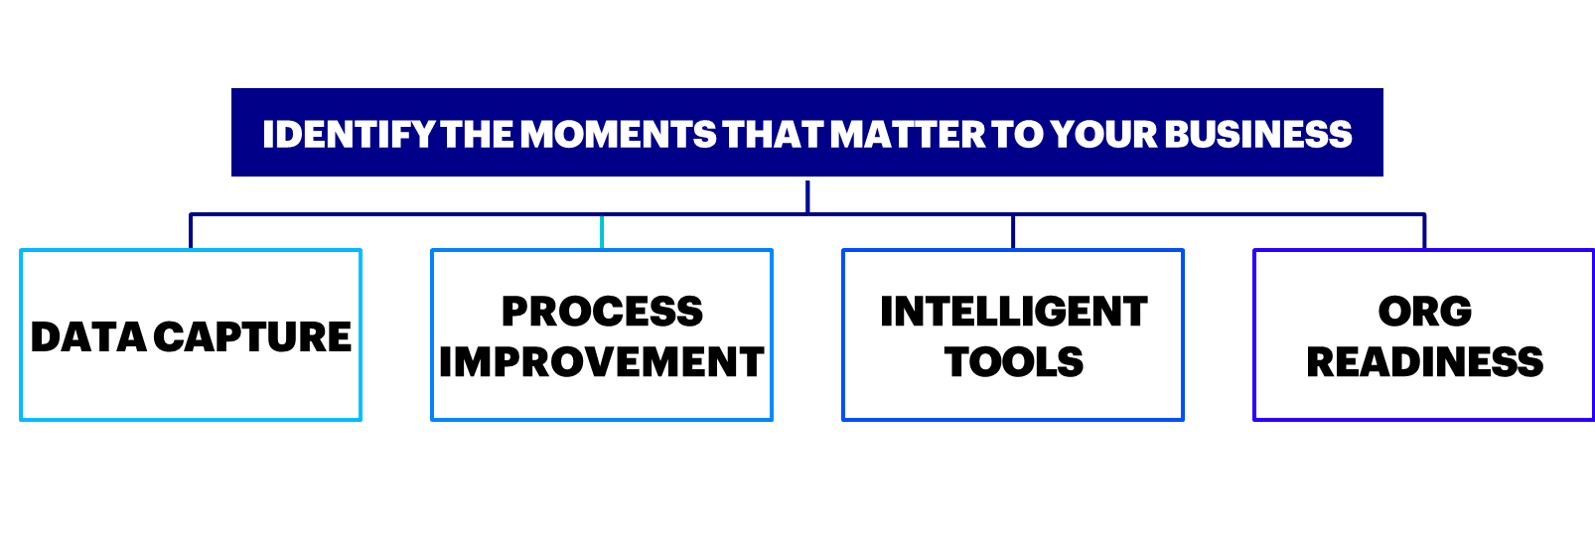 Moments that matter to your business: data capture, process improvement, intelligent tools, organization readiness